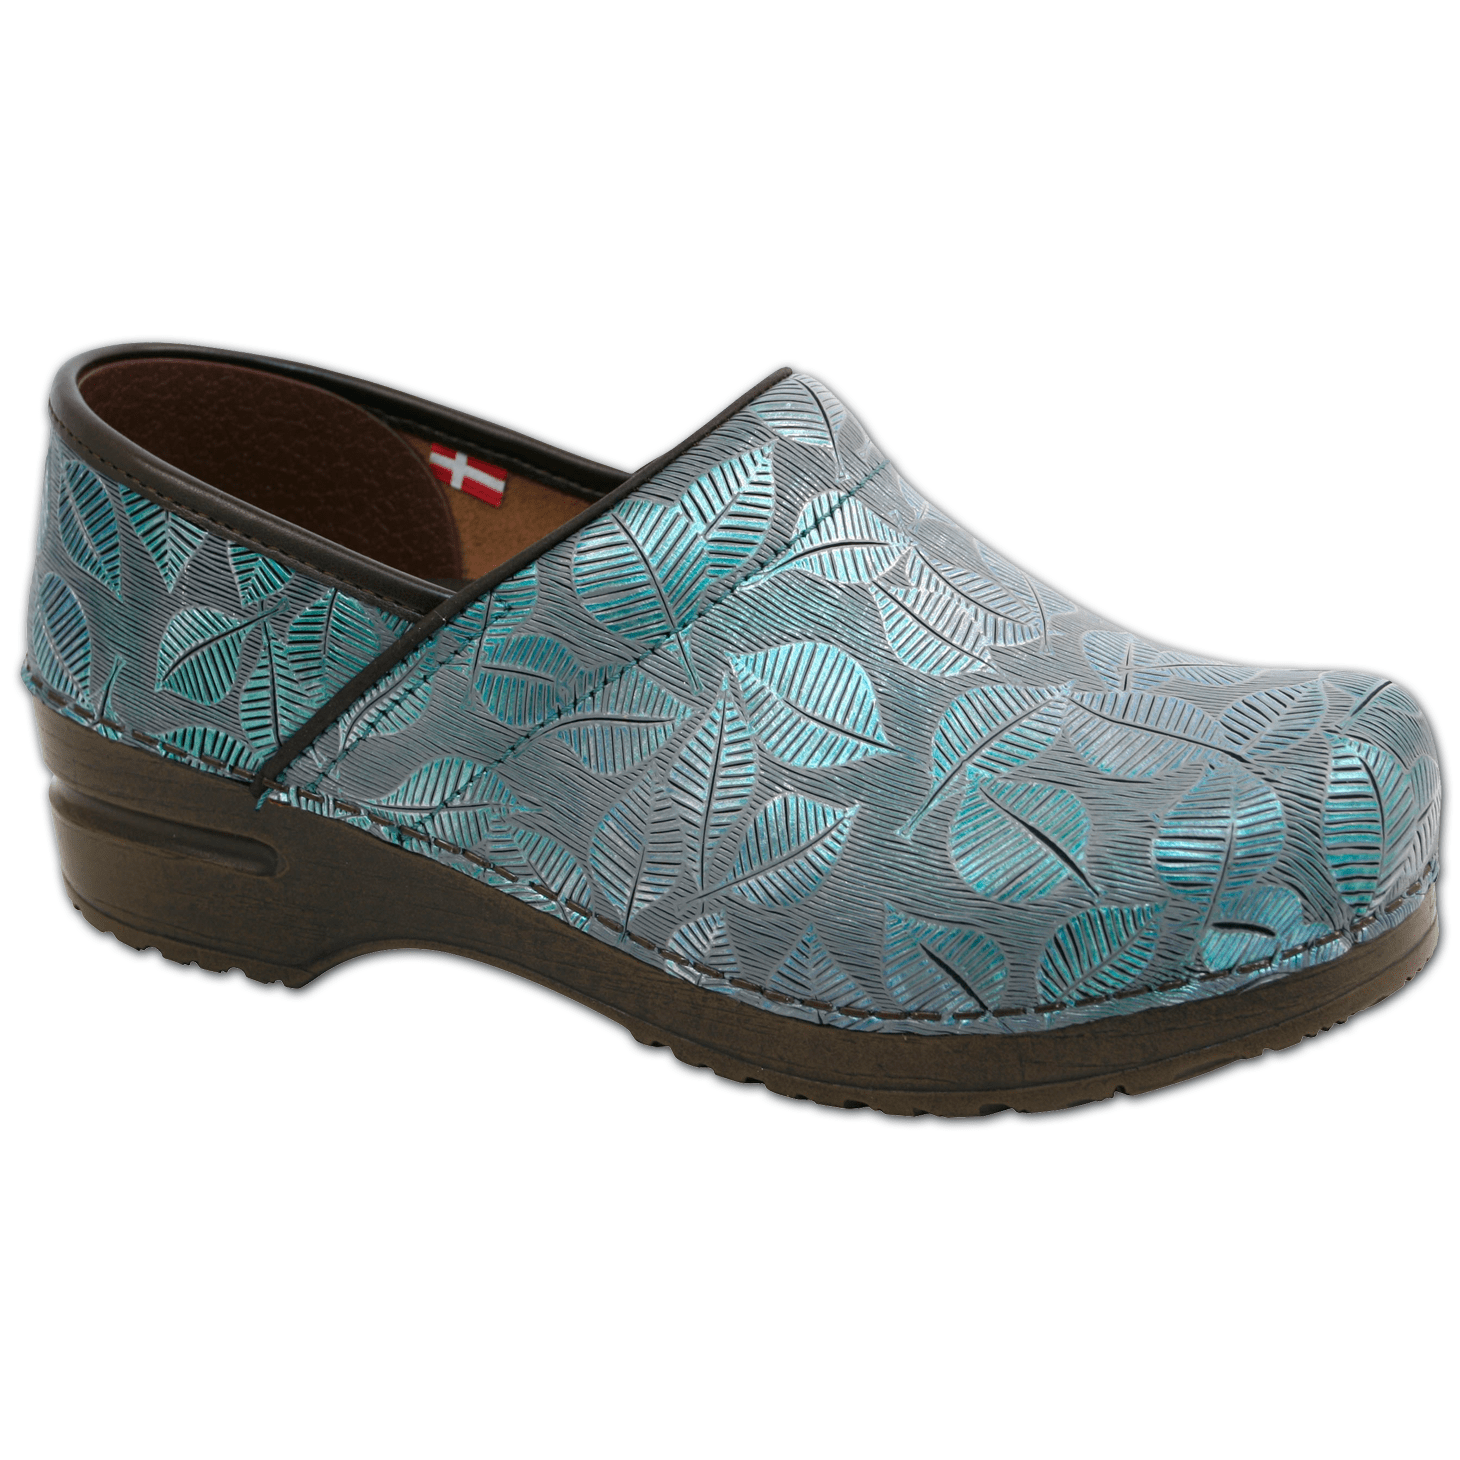 Sanita Hampden Women's in Mint Closed Back Clog